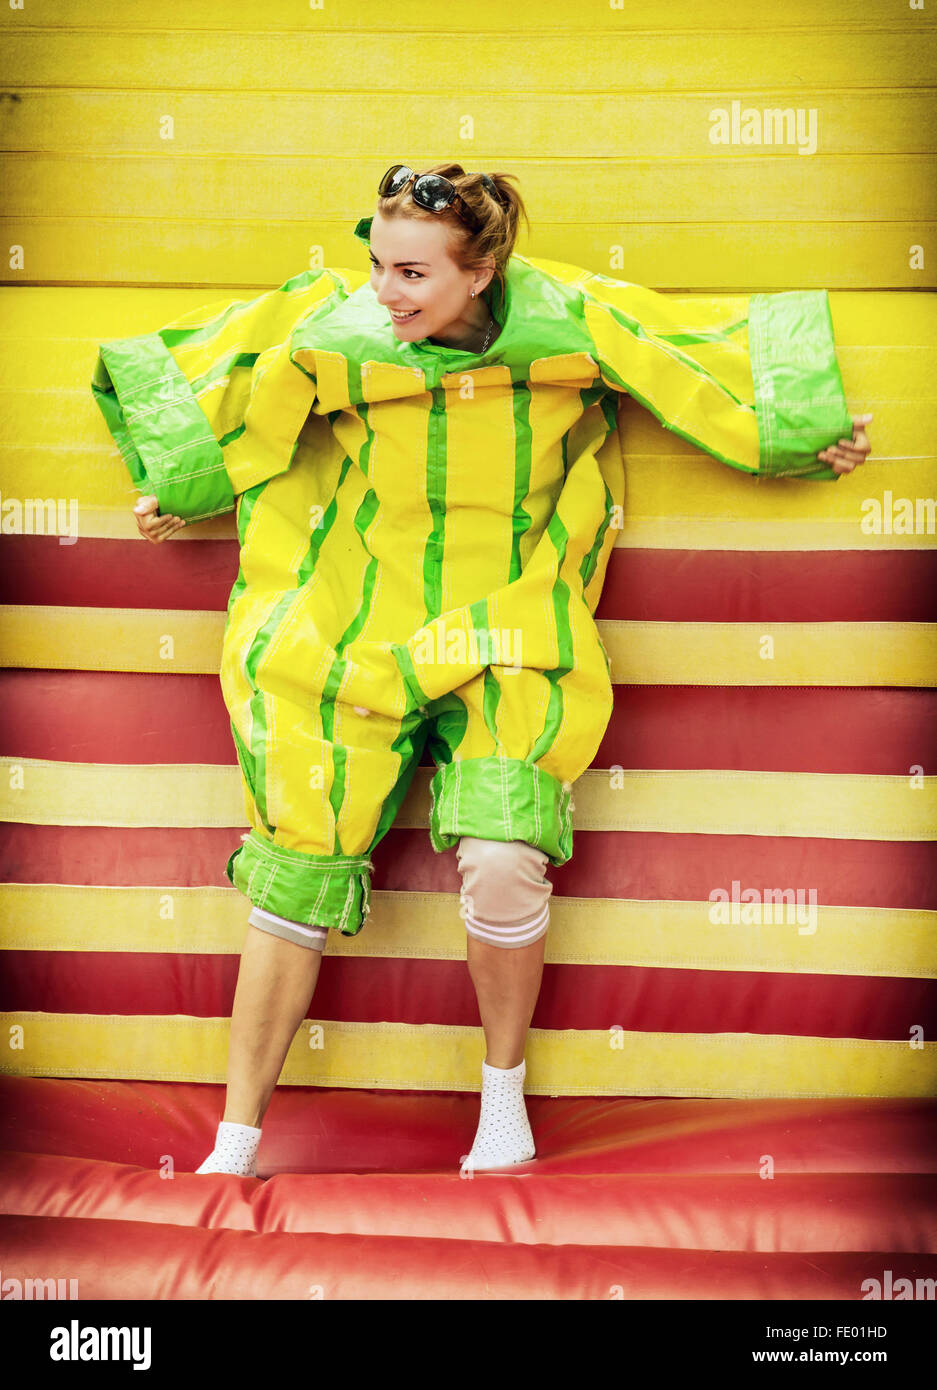 Joyful young woman in plastic dress in a bouncy castle imitates a fly on velcro wall. Inflatable attraction. Leisure Stock Photo